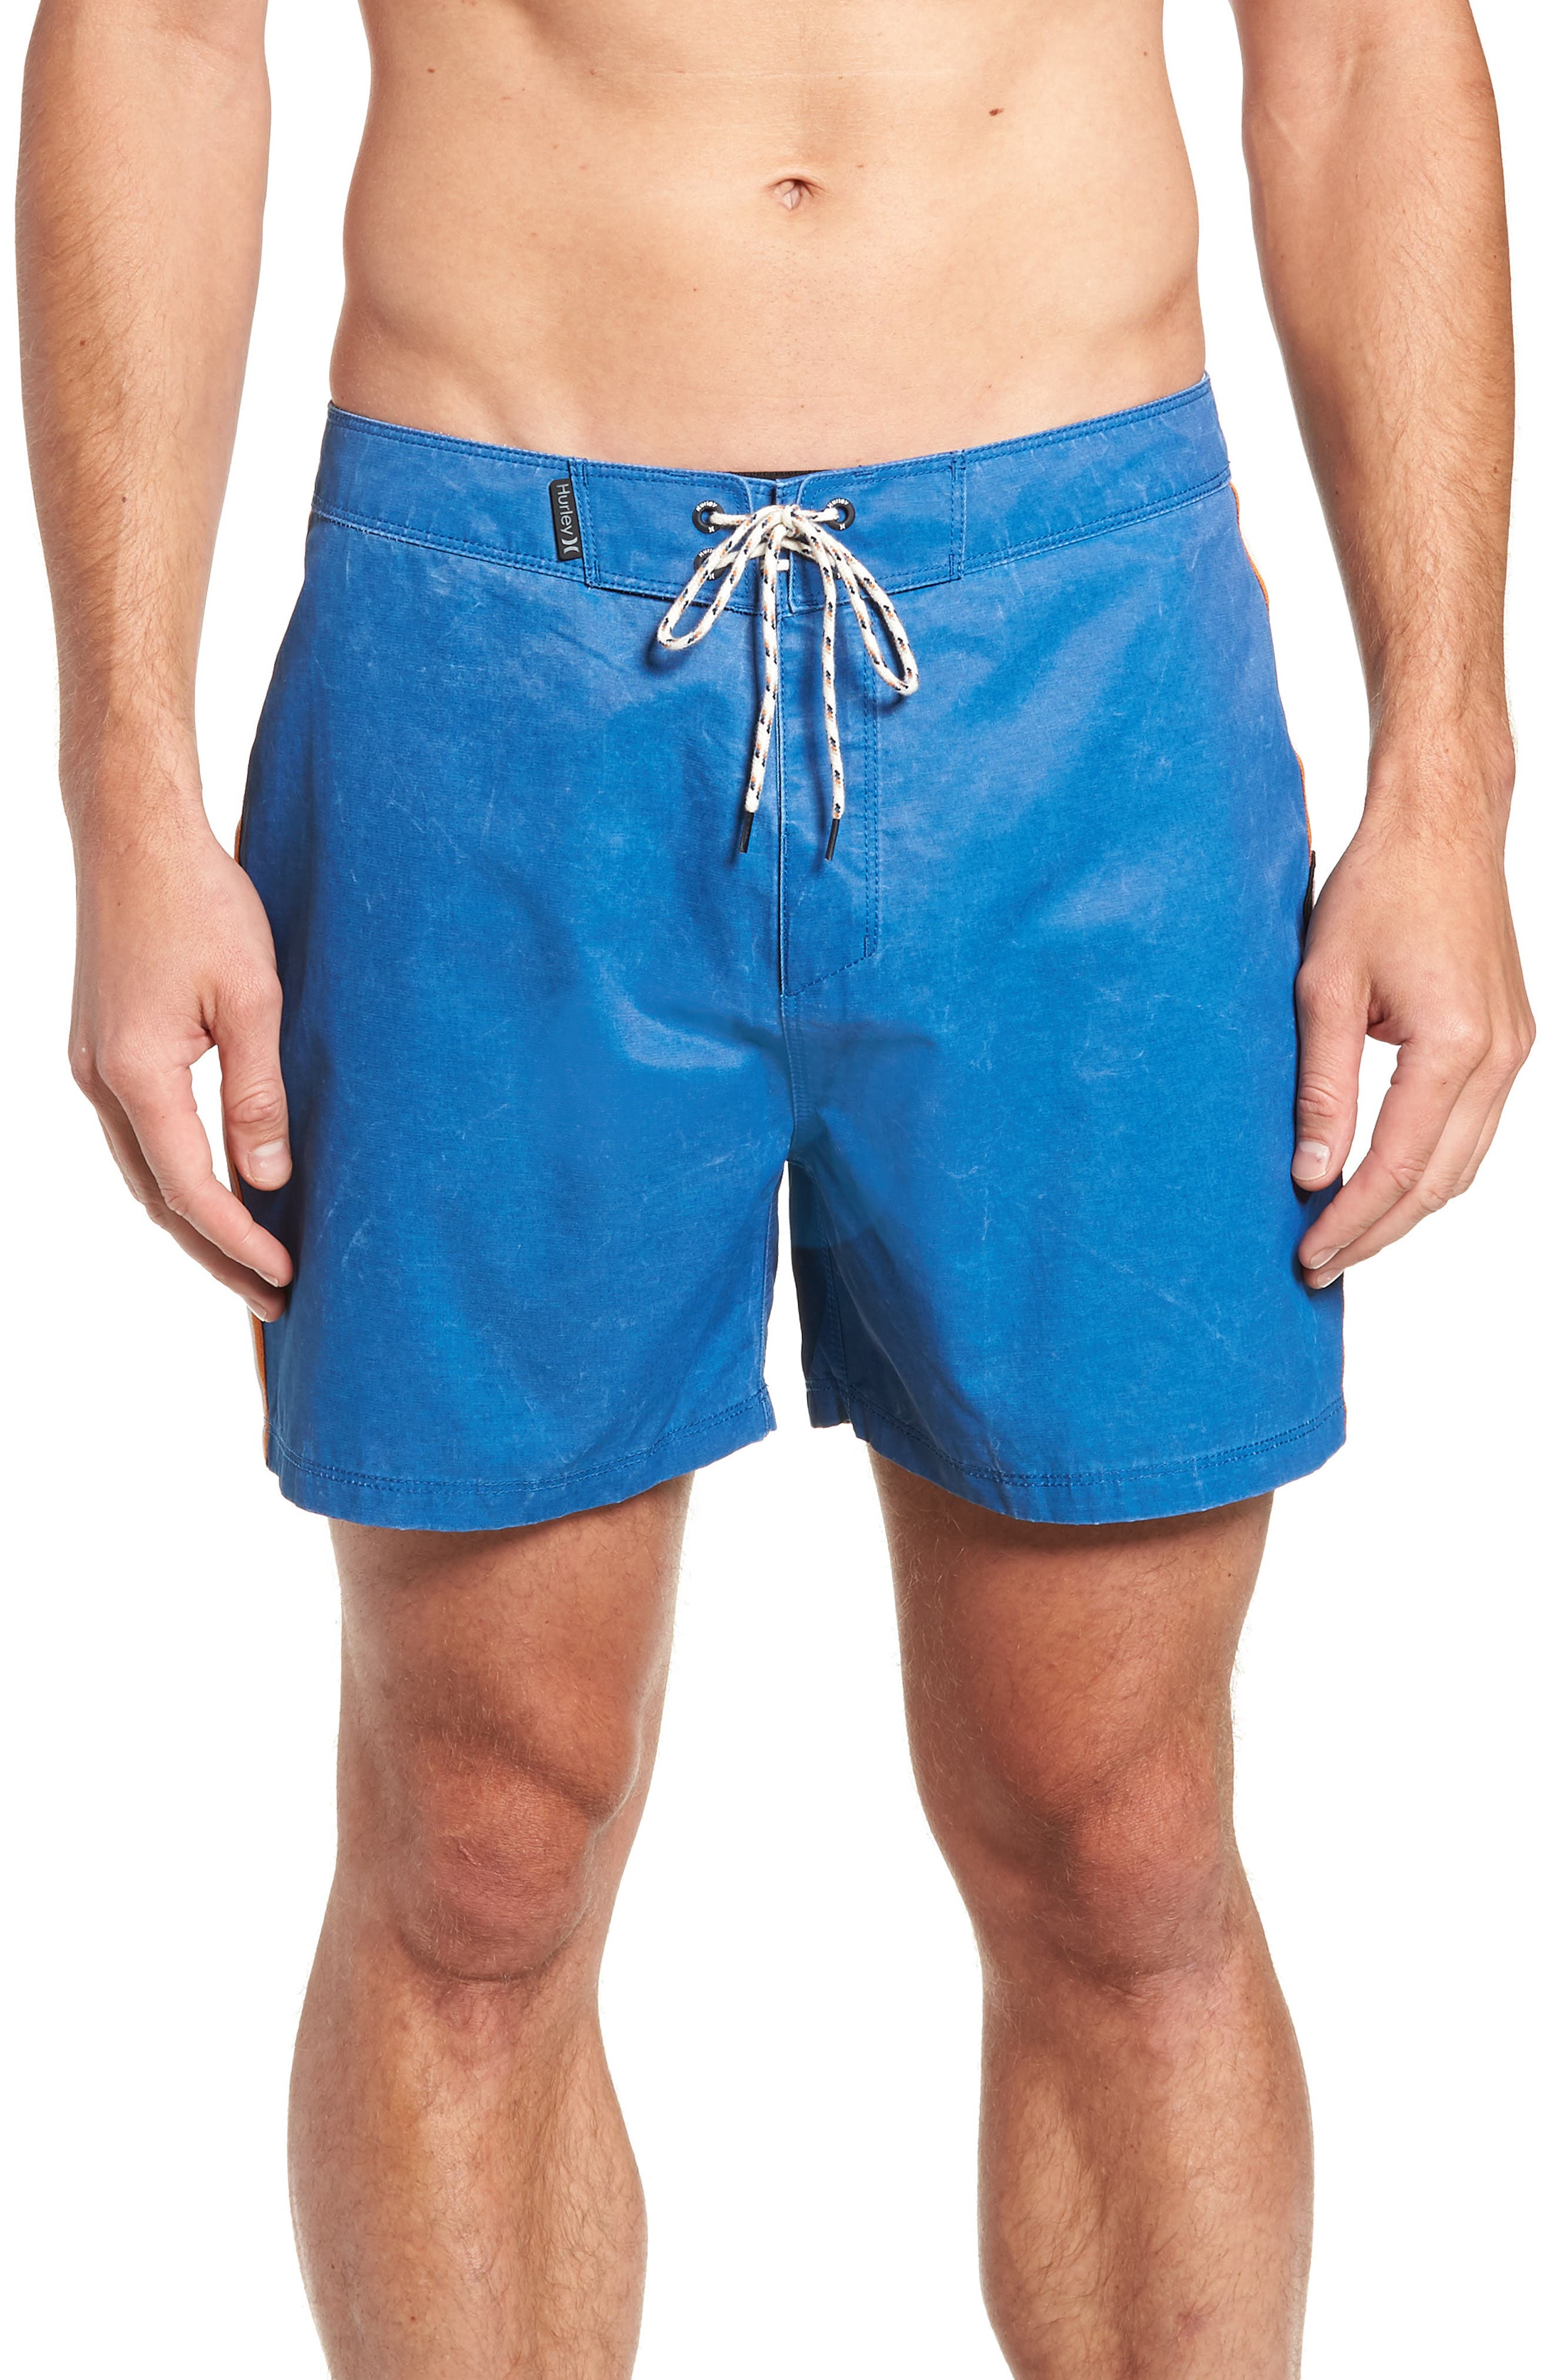 Navigation Board Shorts,                             Main thumbnail 1, color,                             474